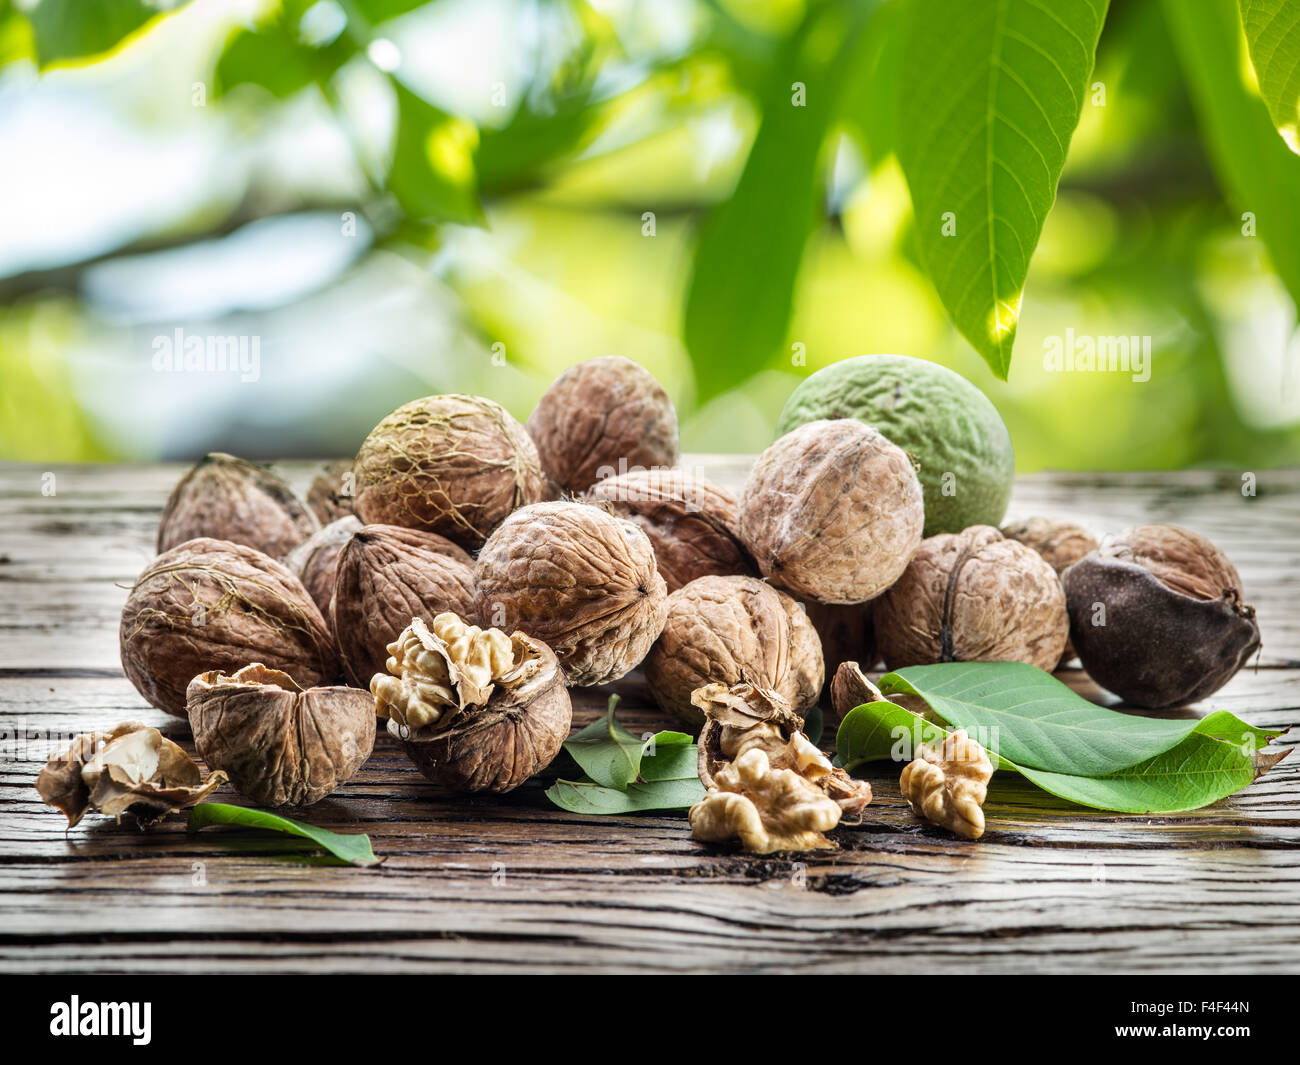 Walnuts on the wooden table under the walnut-tree. - Stock Image